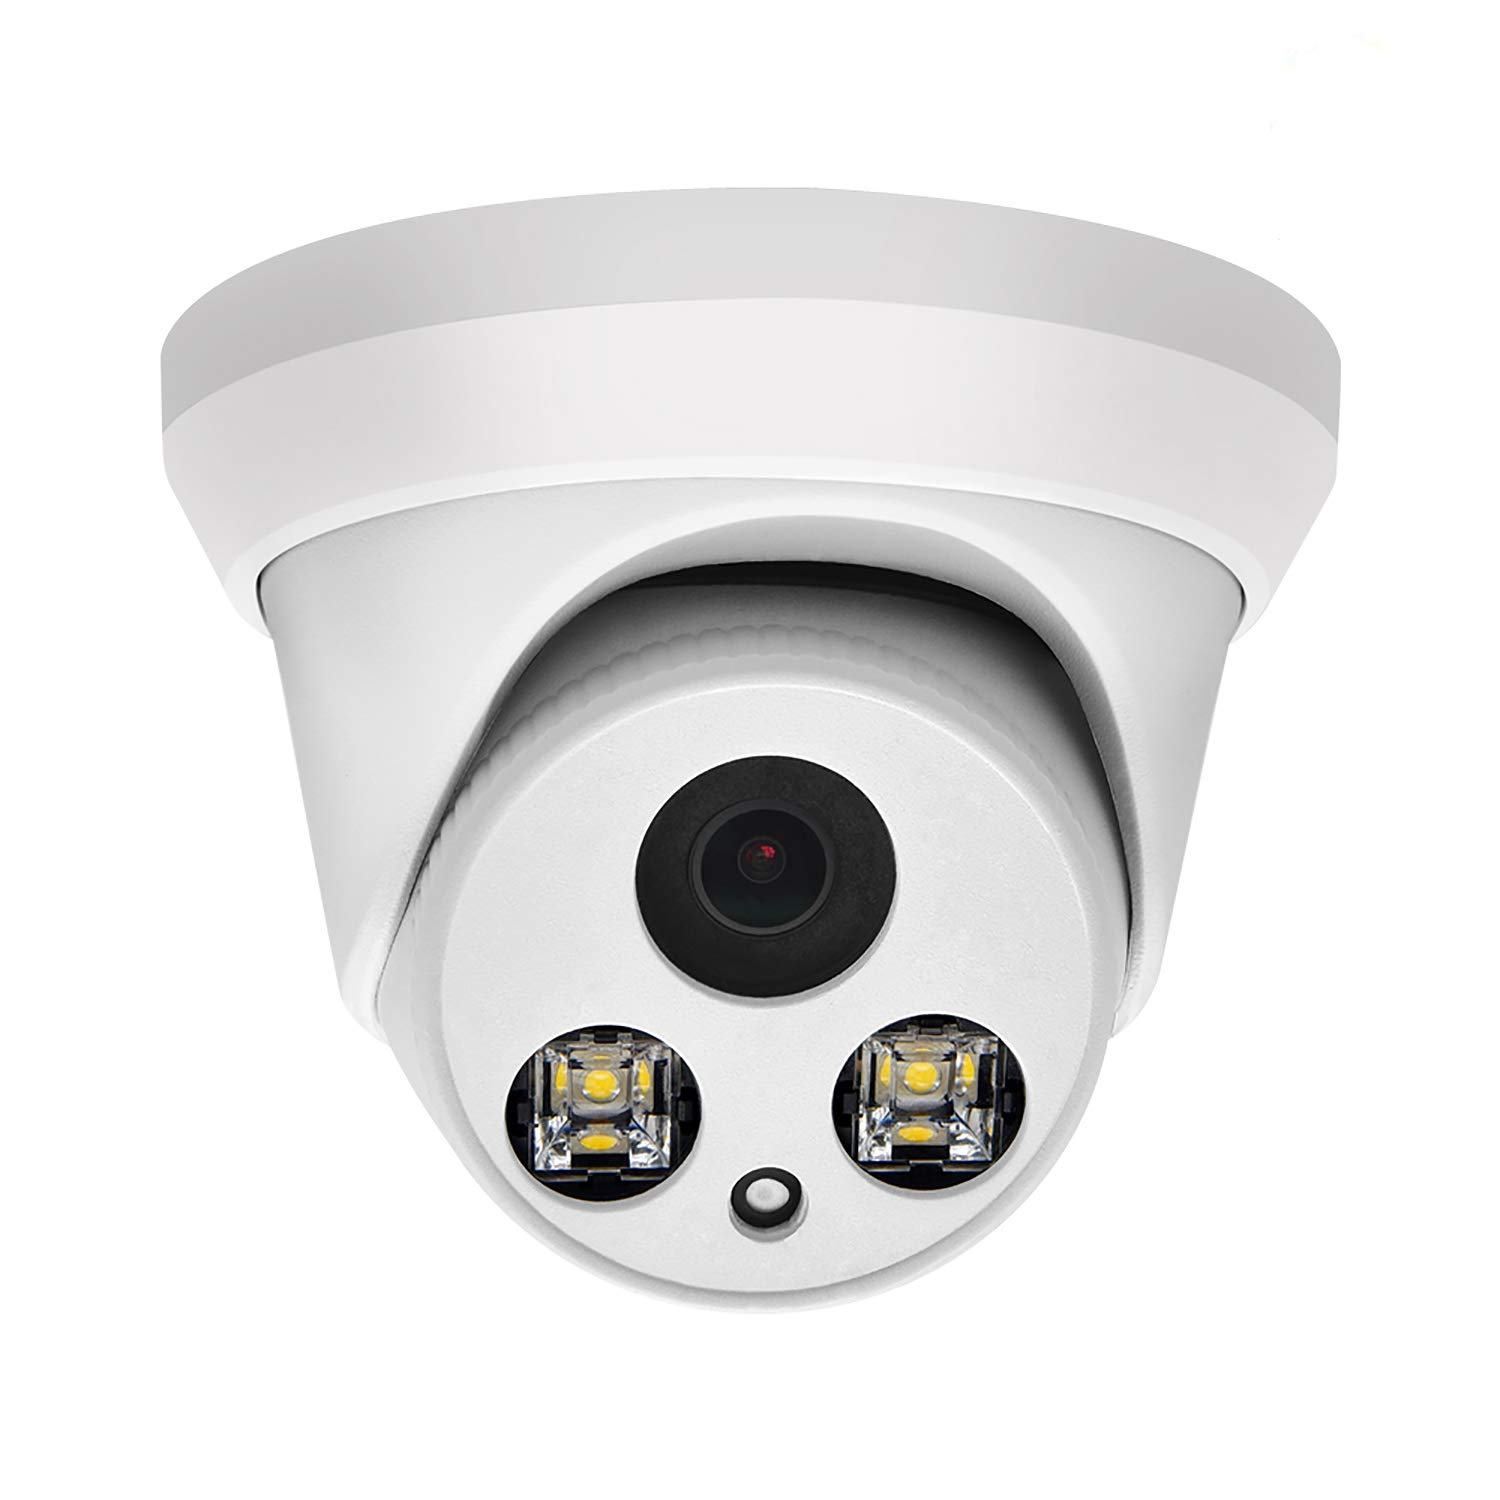 Hikvision Compatible Full Color 8MP Security Camera, 2.8mm Lens, Home Outdoor IP Surveillance Camera, PG2387C, IP67 Waterproof Cam PoE IP Camera, Motion Detection, Built-in Mic, H.265 3D DNR (8MP)